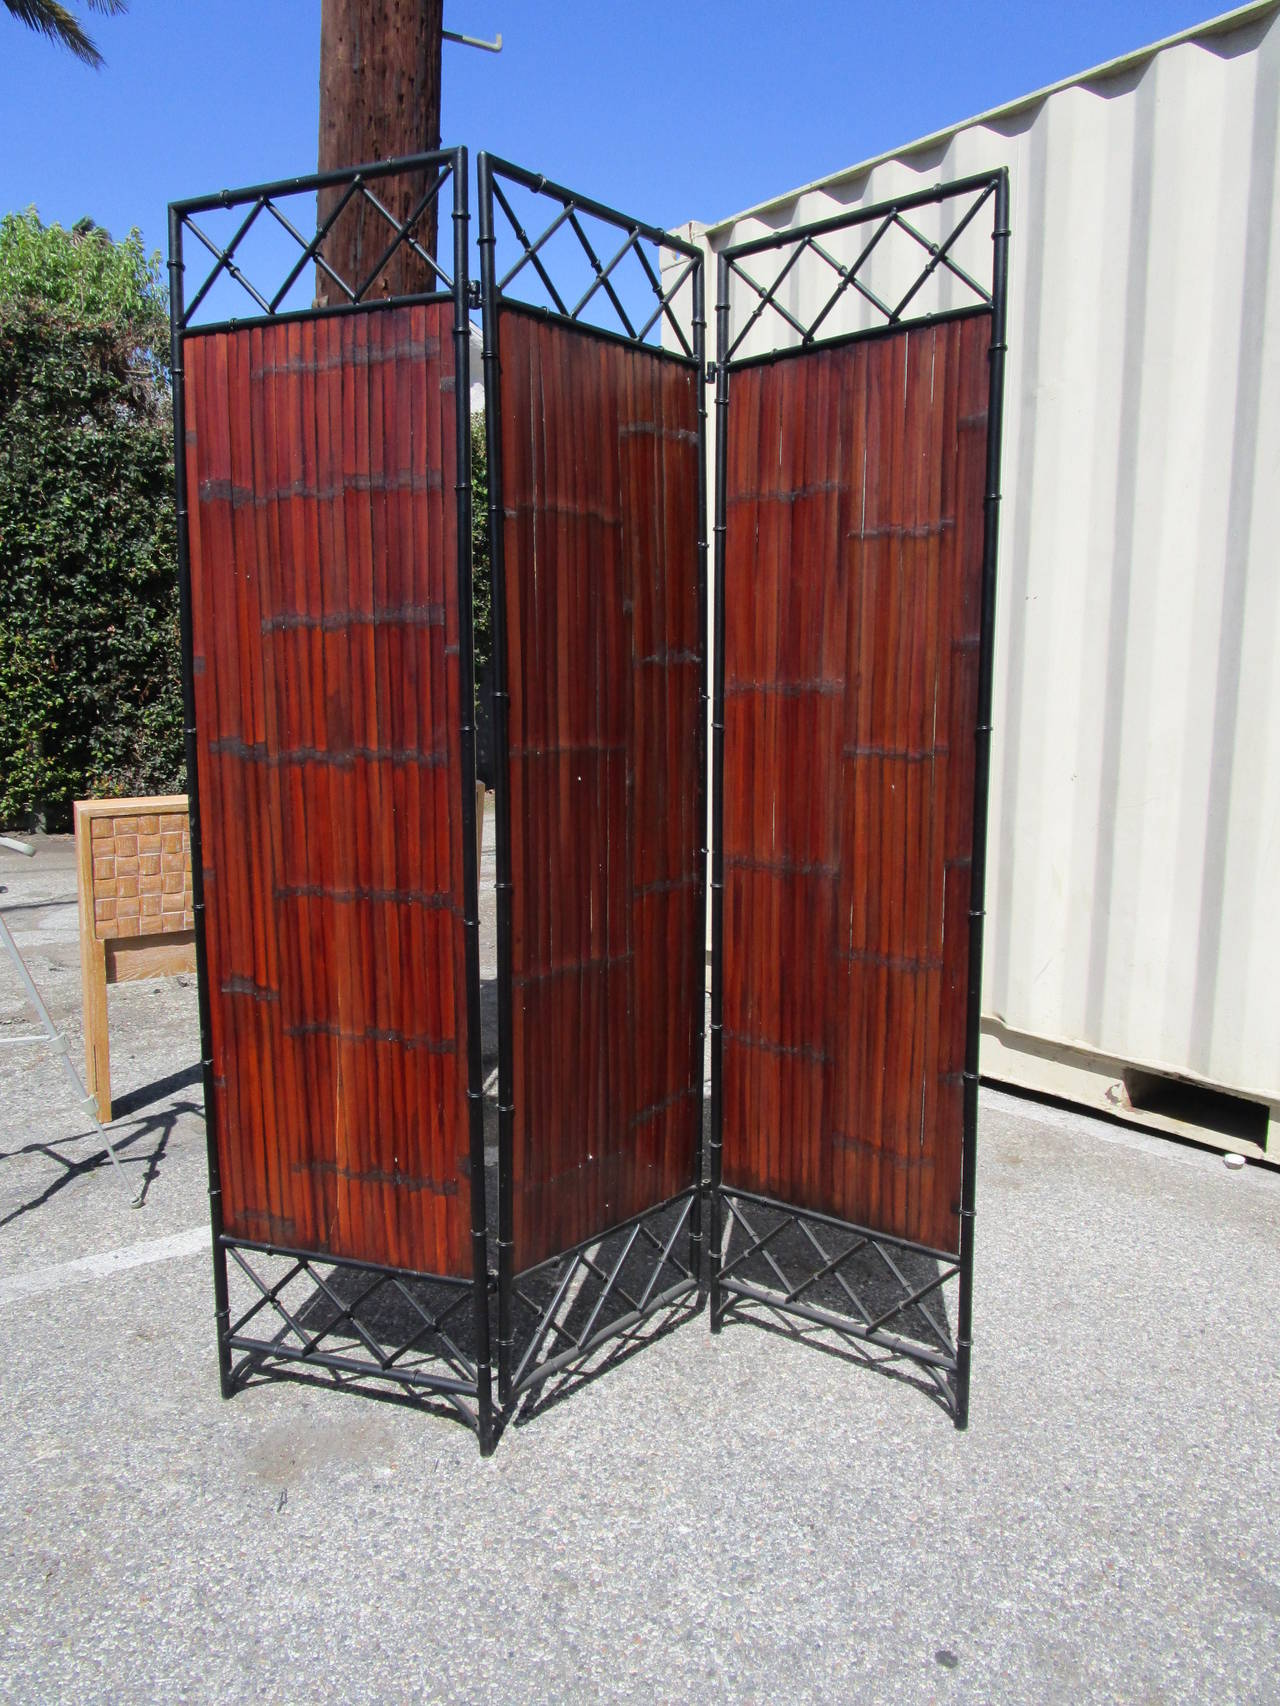 A sturdy, classic 3 panel wrought iron and bamboo slat screen. The bamboo slats have a rich, mahogany finish.